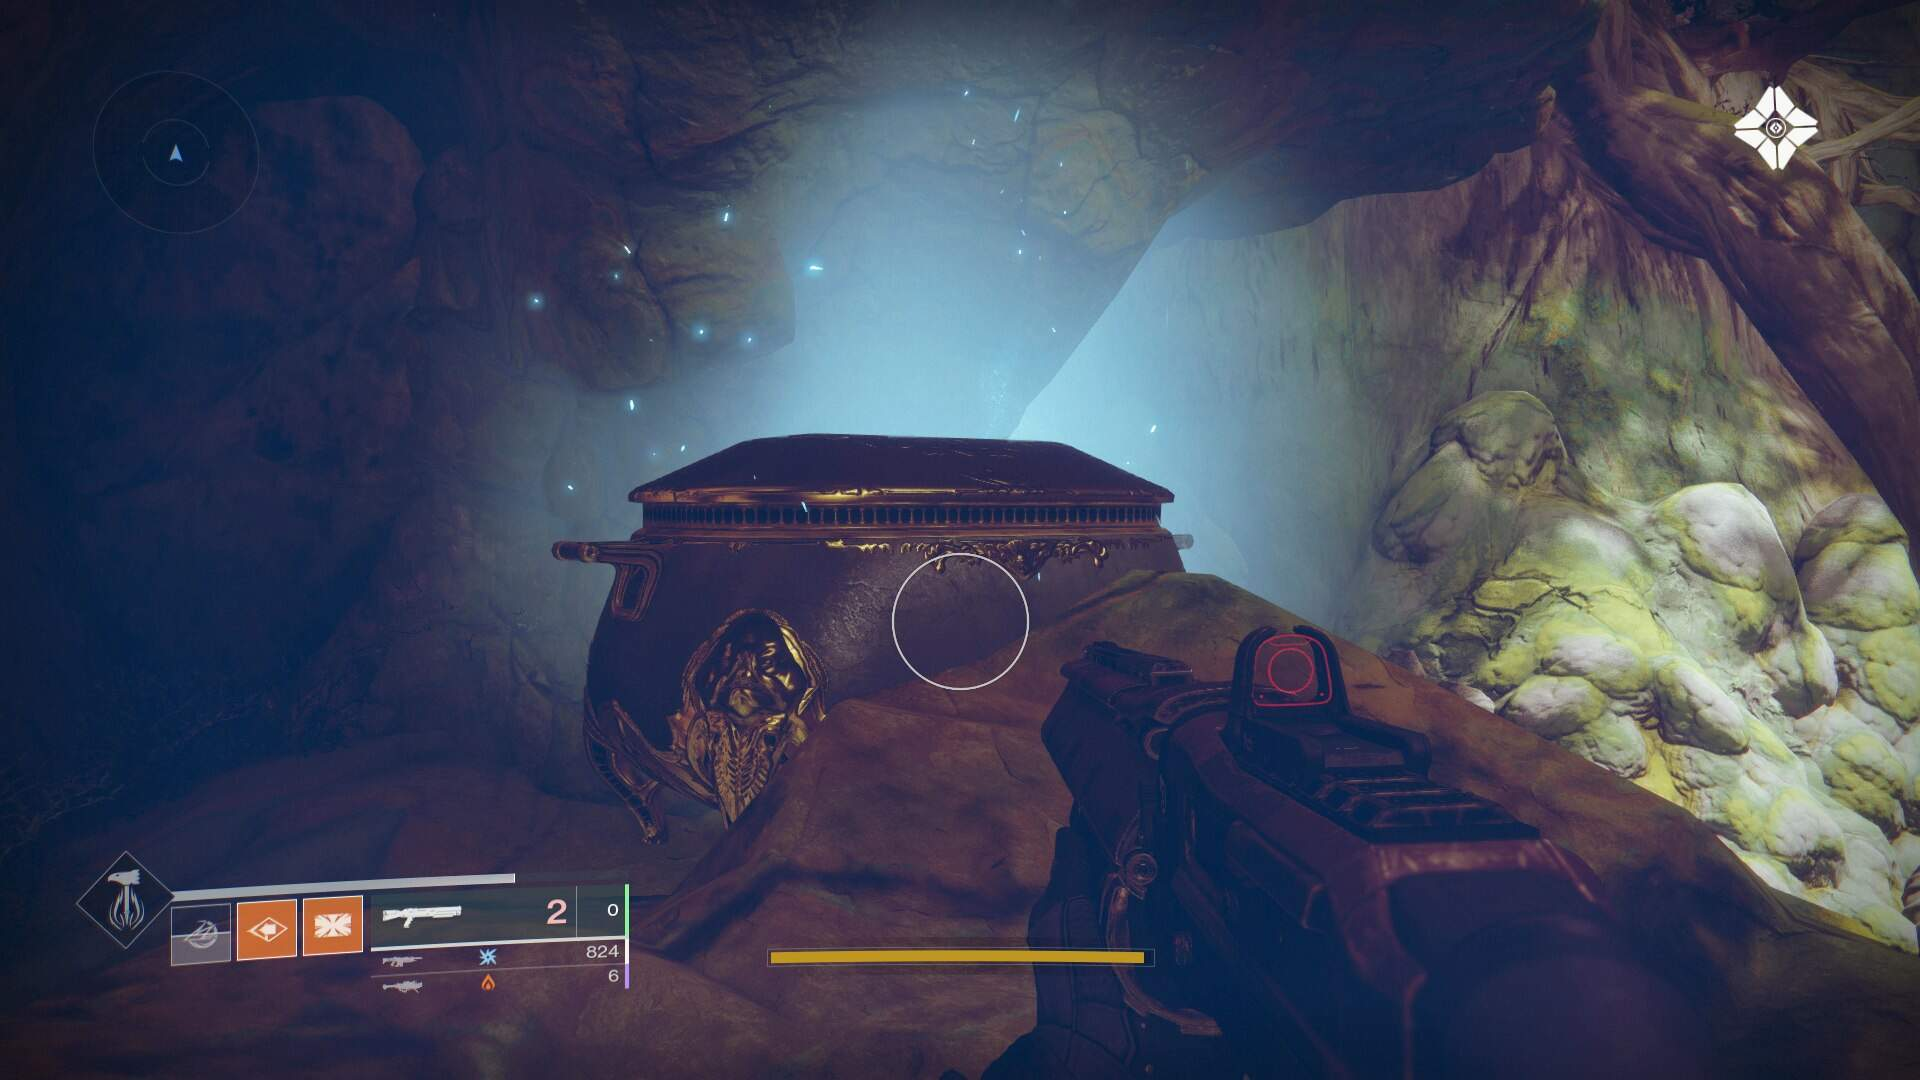 Destiny 2 Imperial Treasure Map Locations - How to Find the Io, Mars, Nessus Locations